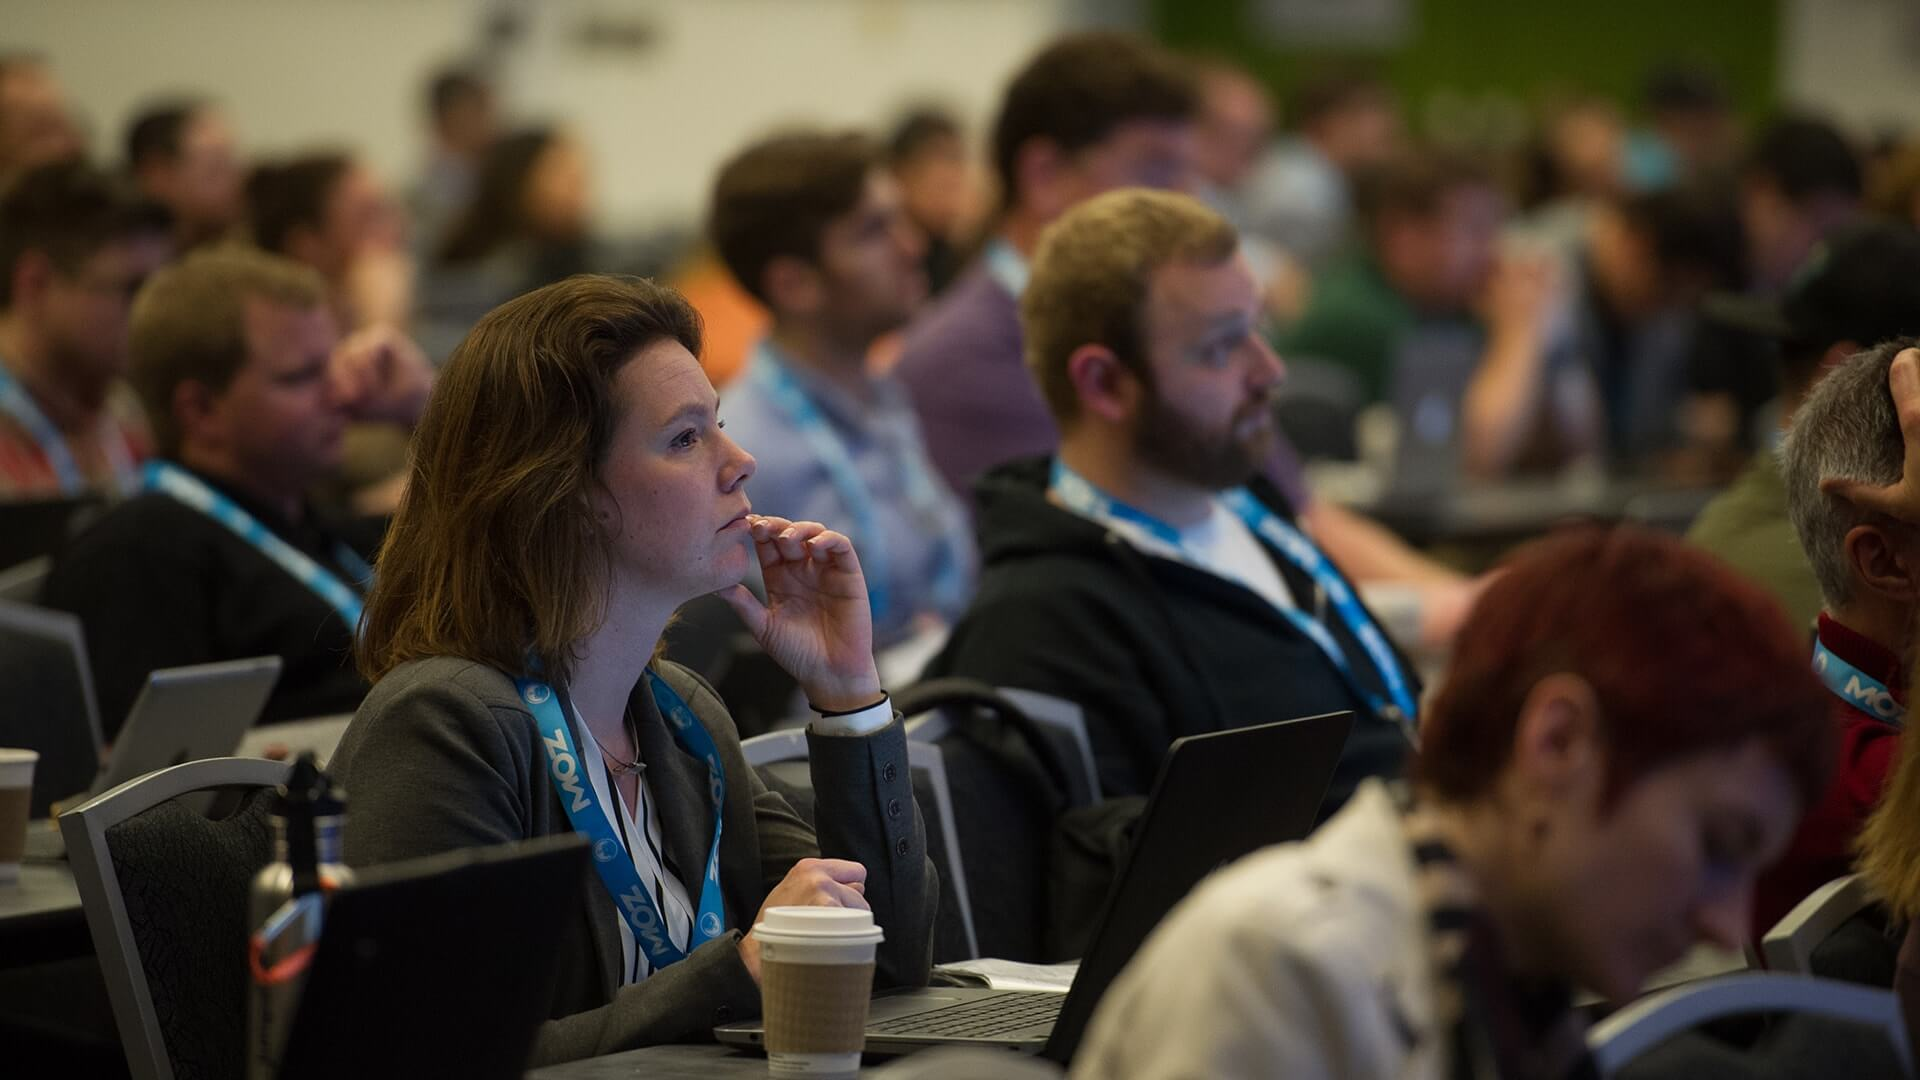 smx-attendee-female-1920px